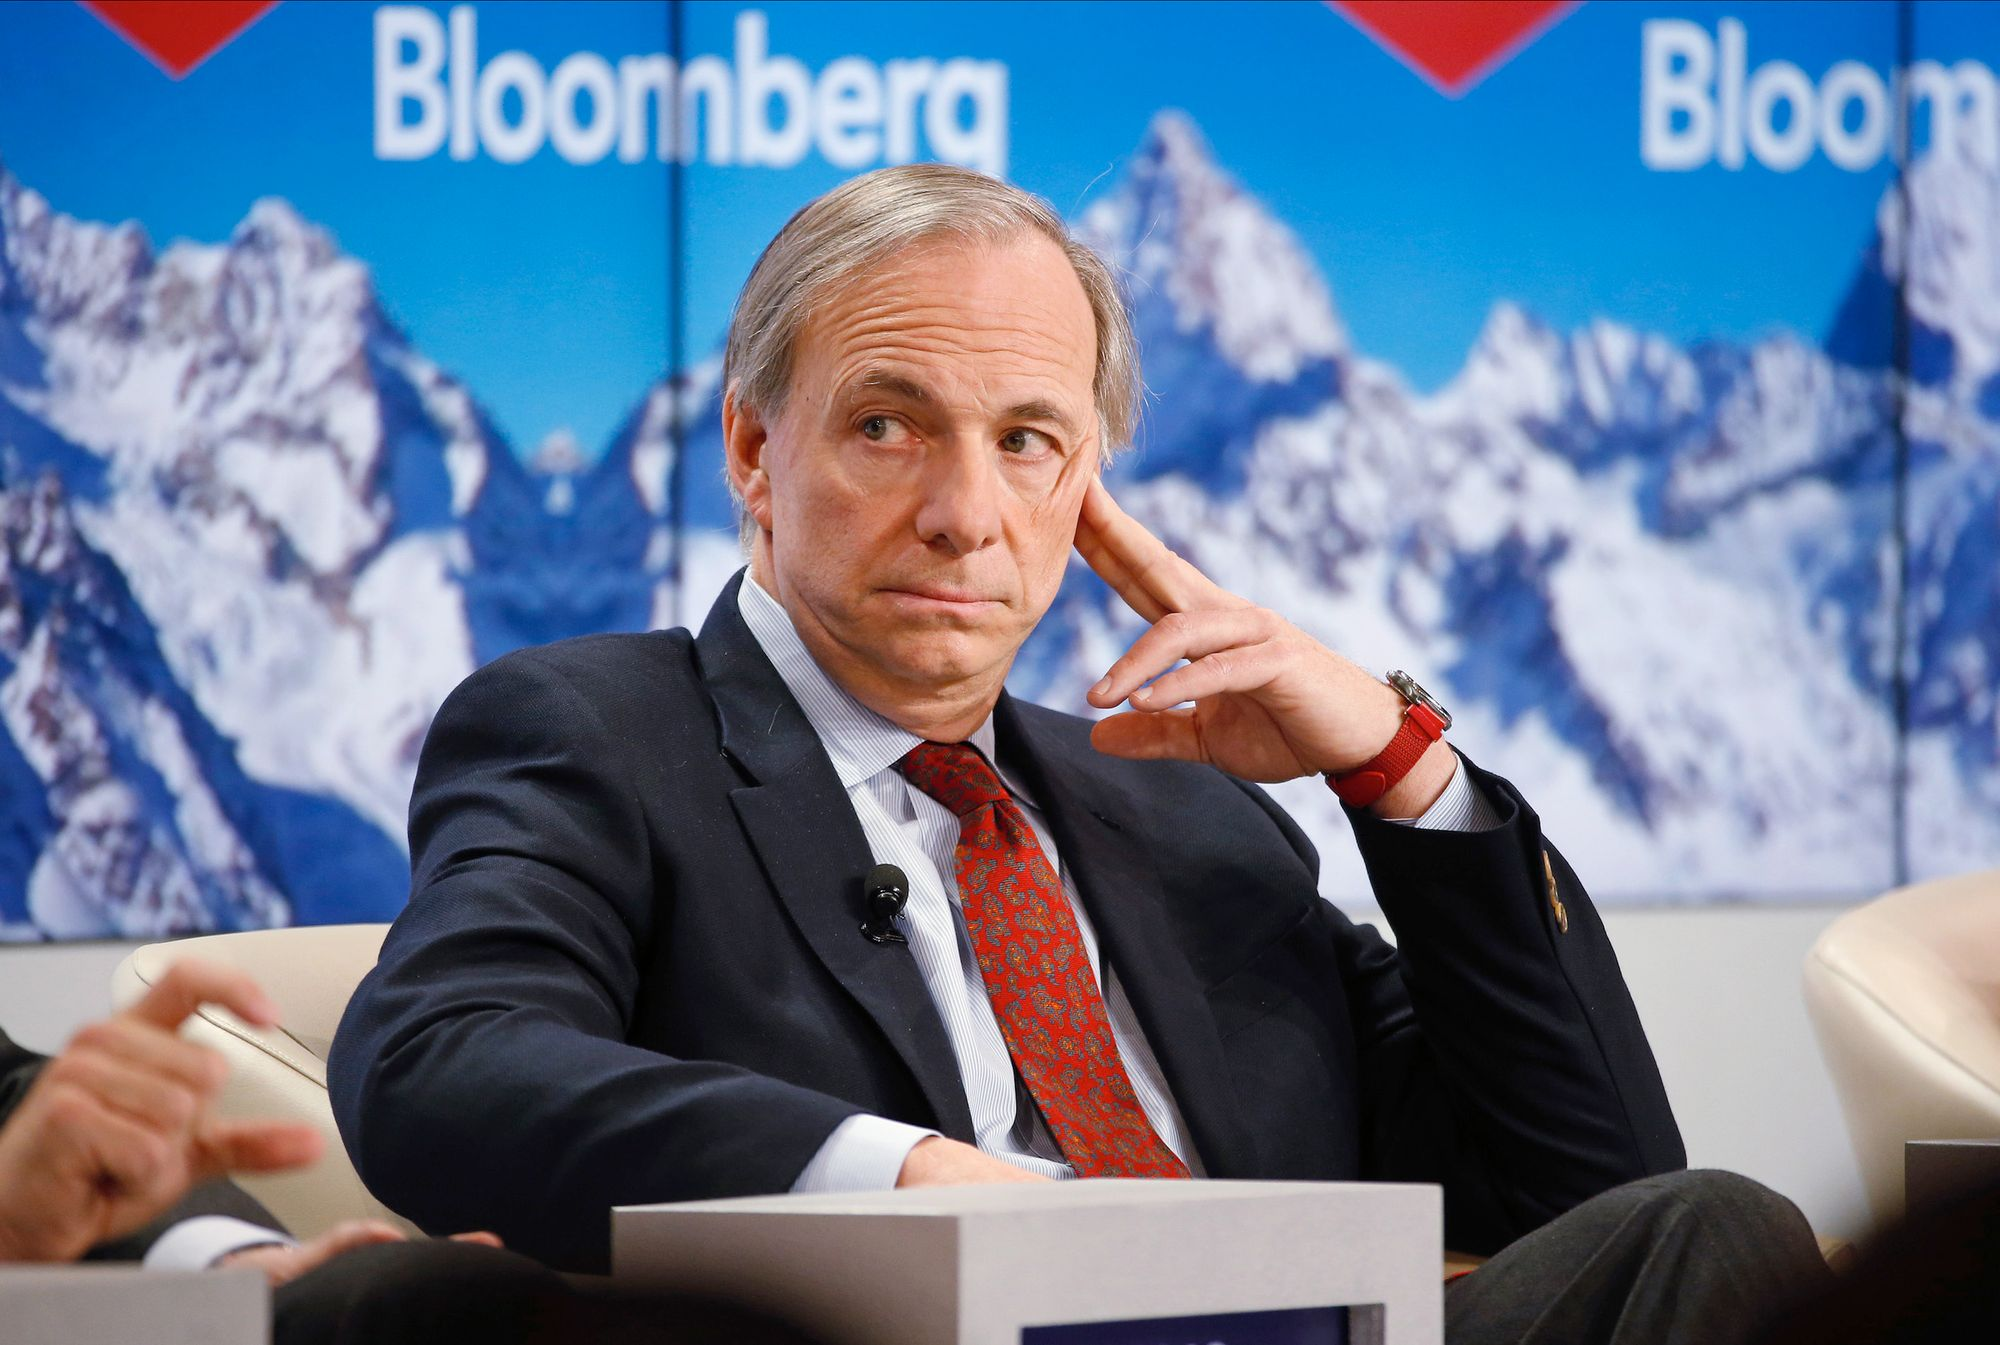 Ray Dalio on forming principles